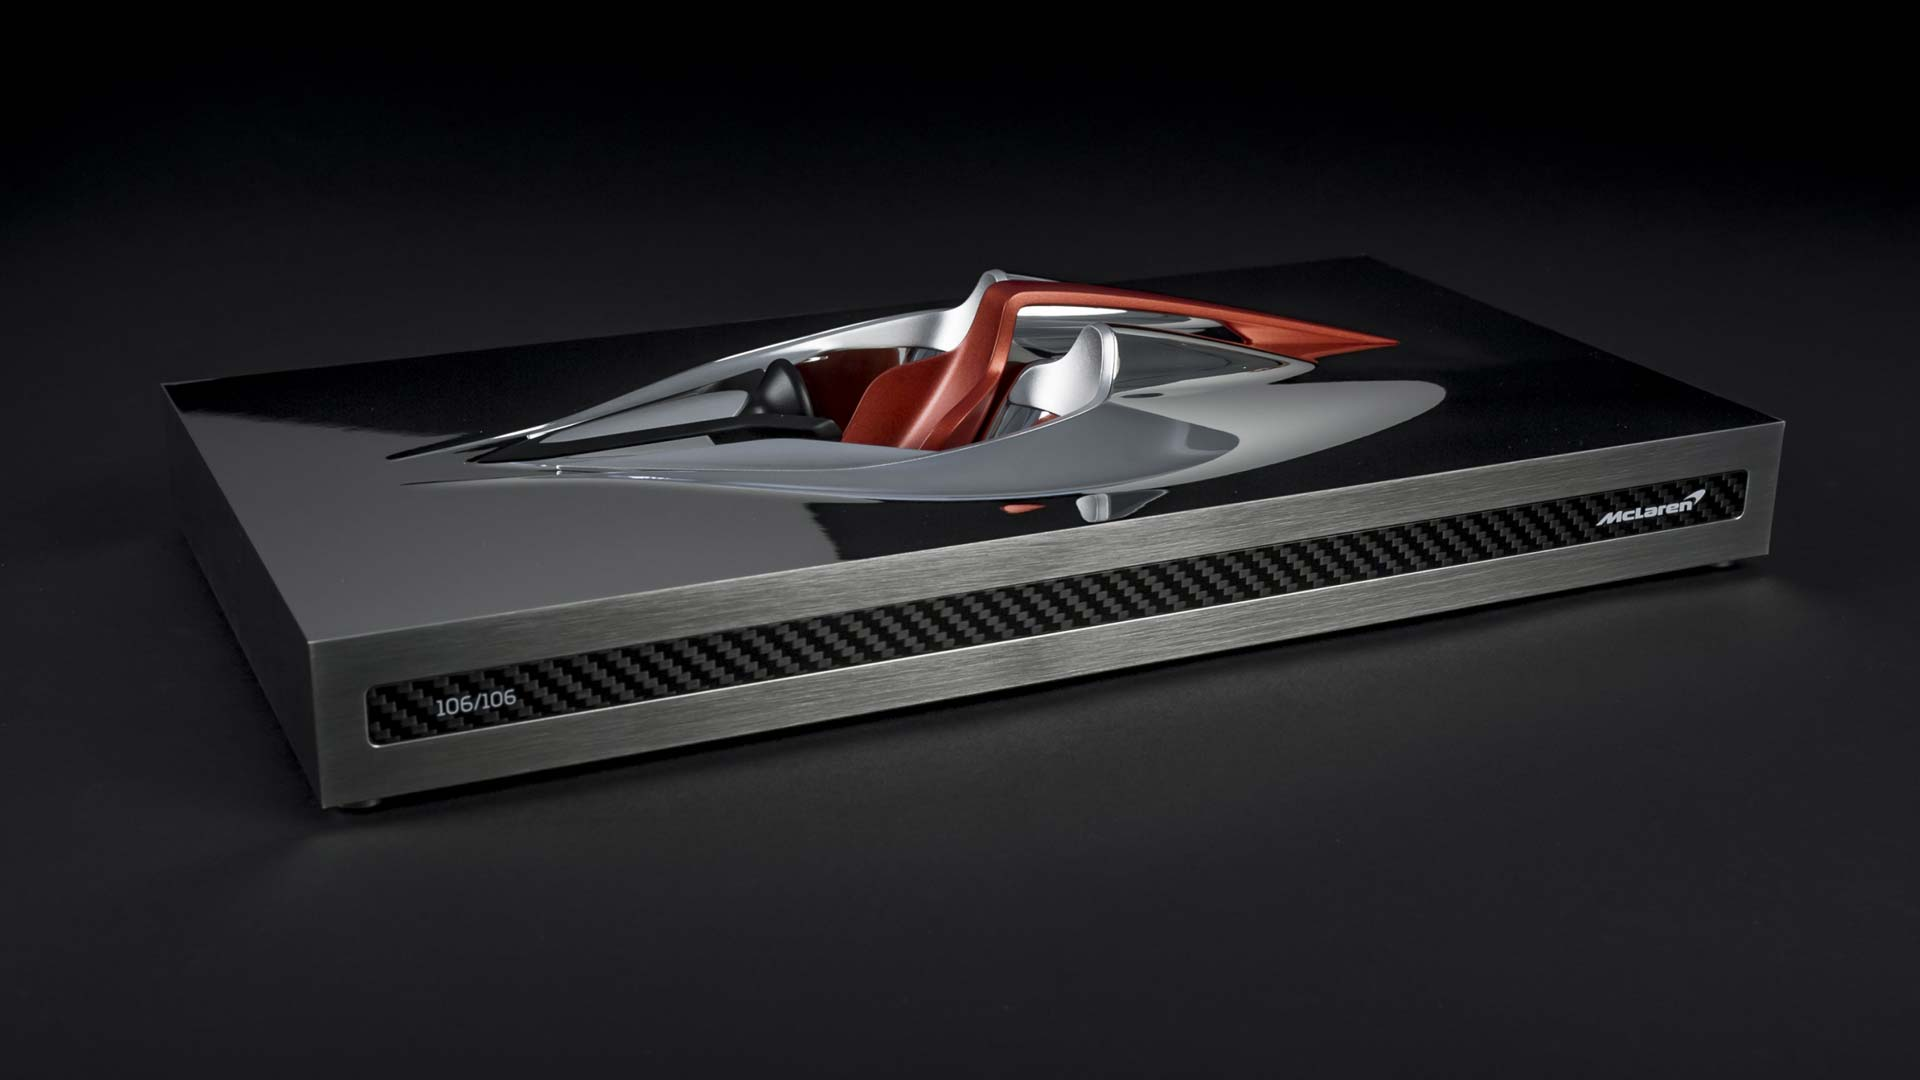 McLaren-Hyper-GT-BP23-sculpture_4